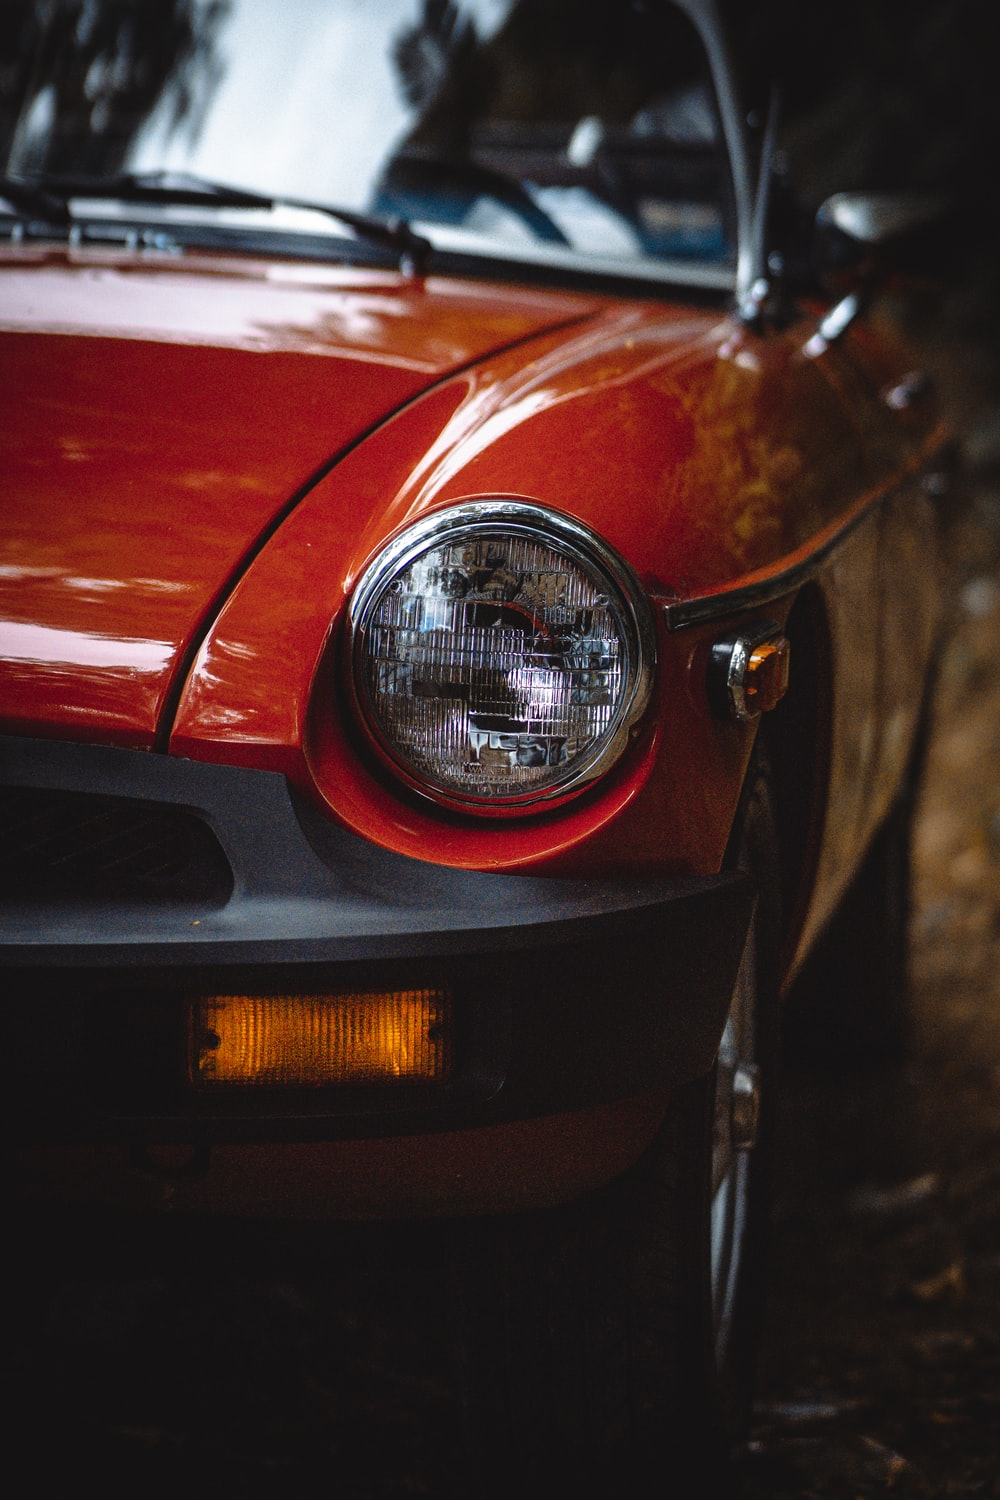 red car with black and silver headlight